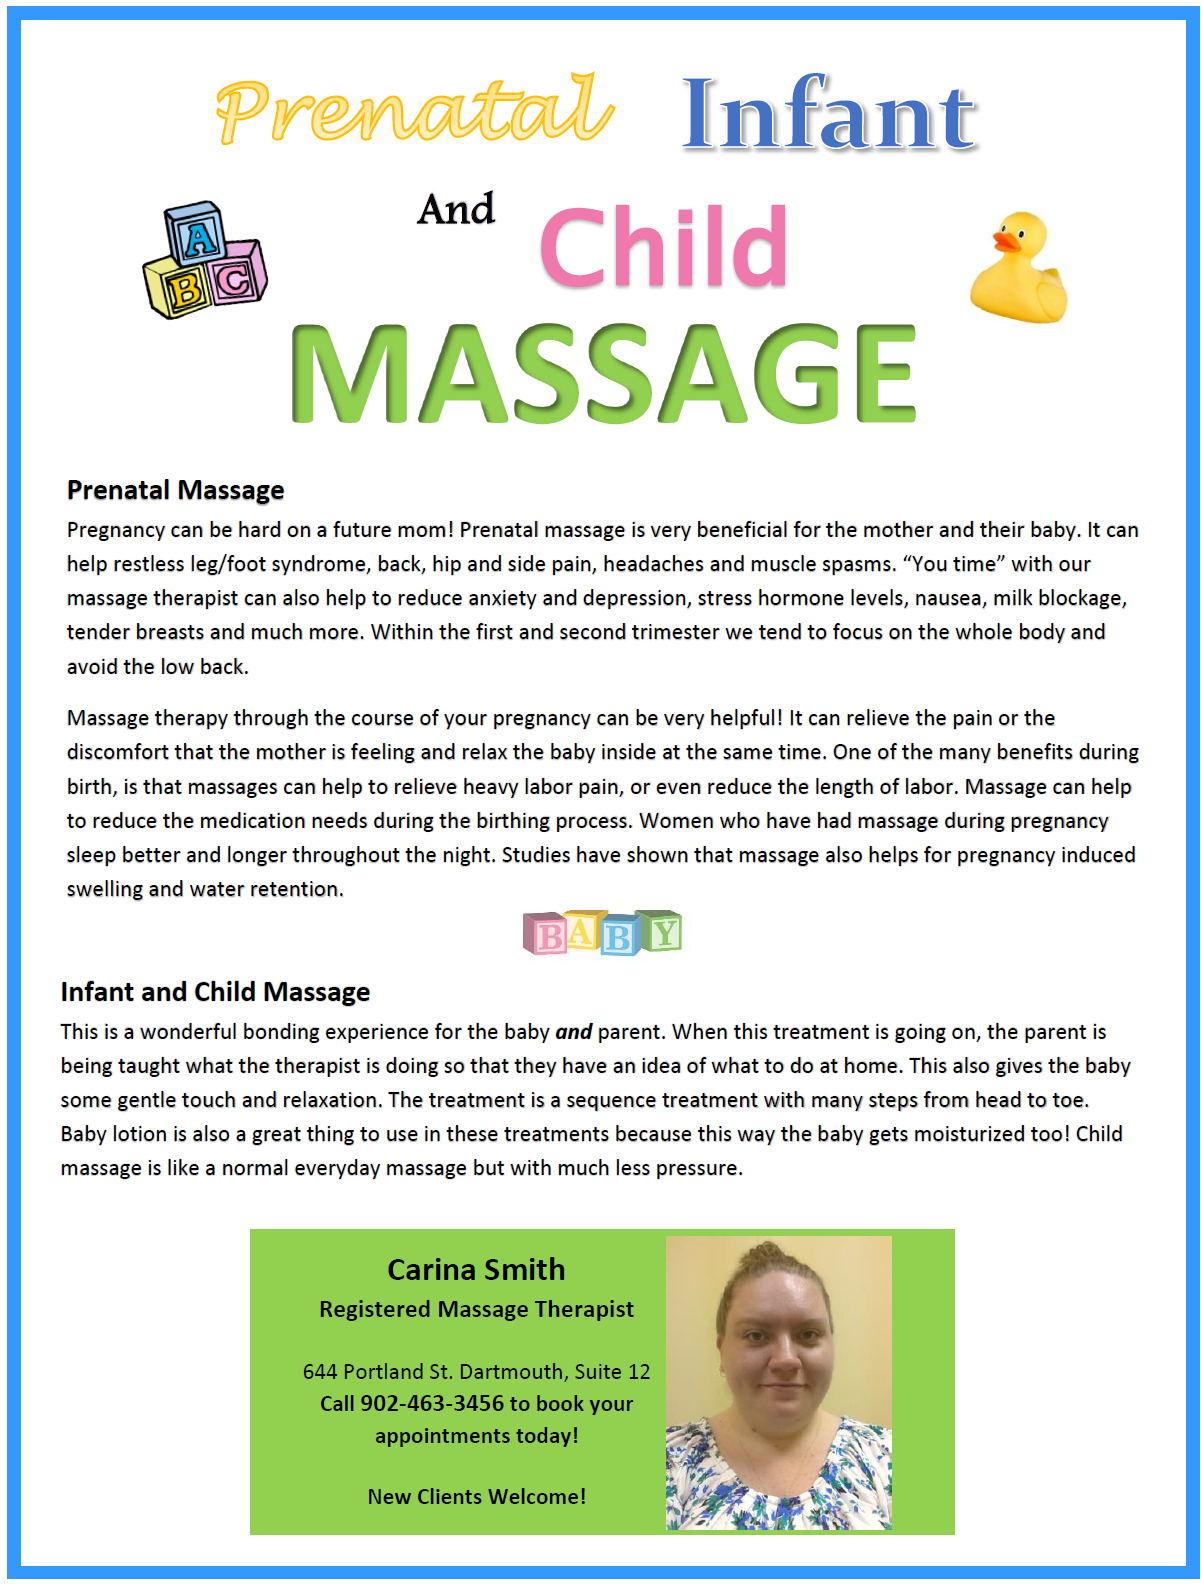 Prenatal, Infant & Child Massage